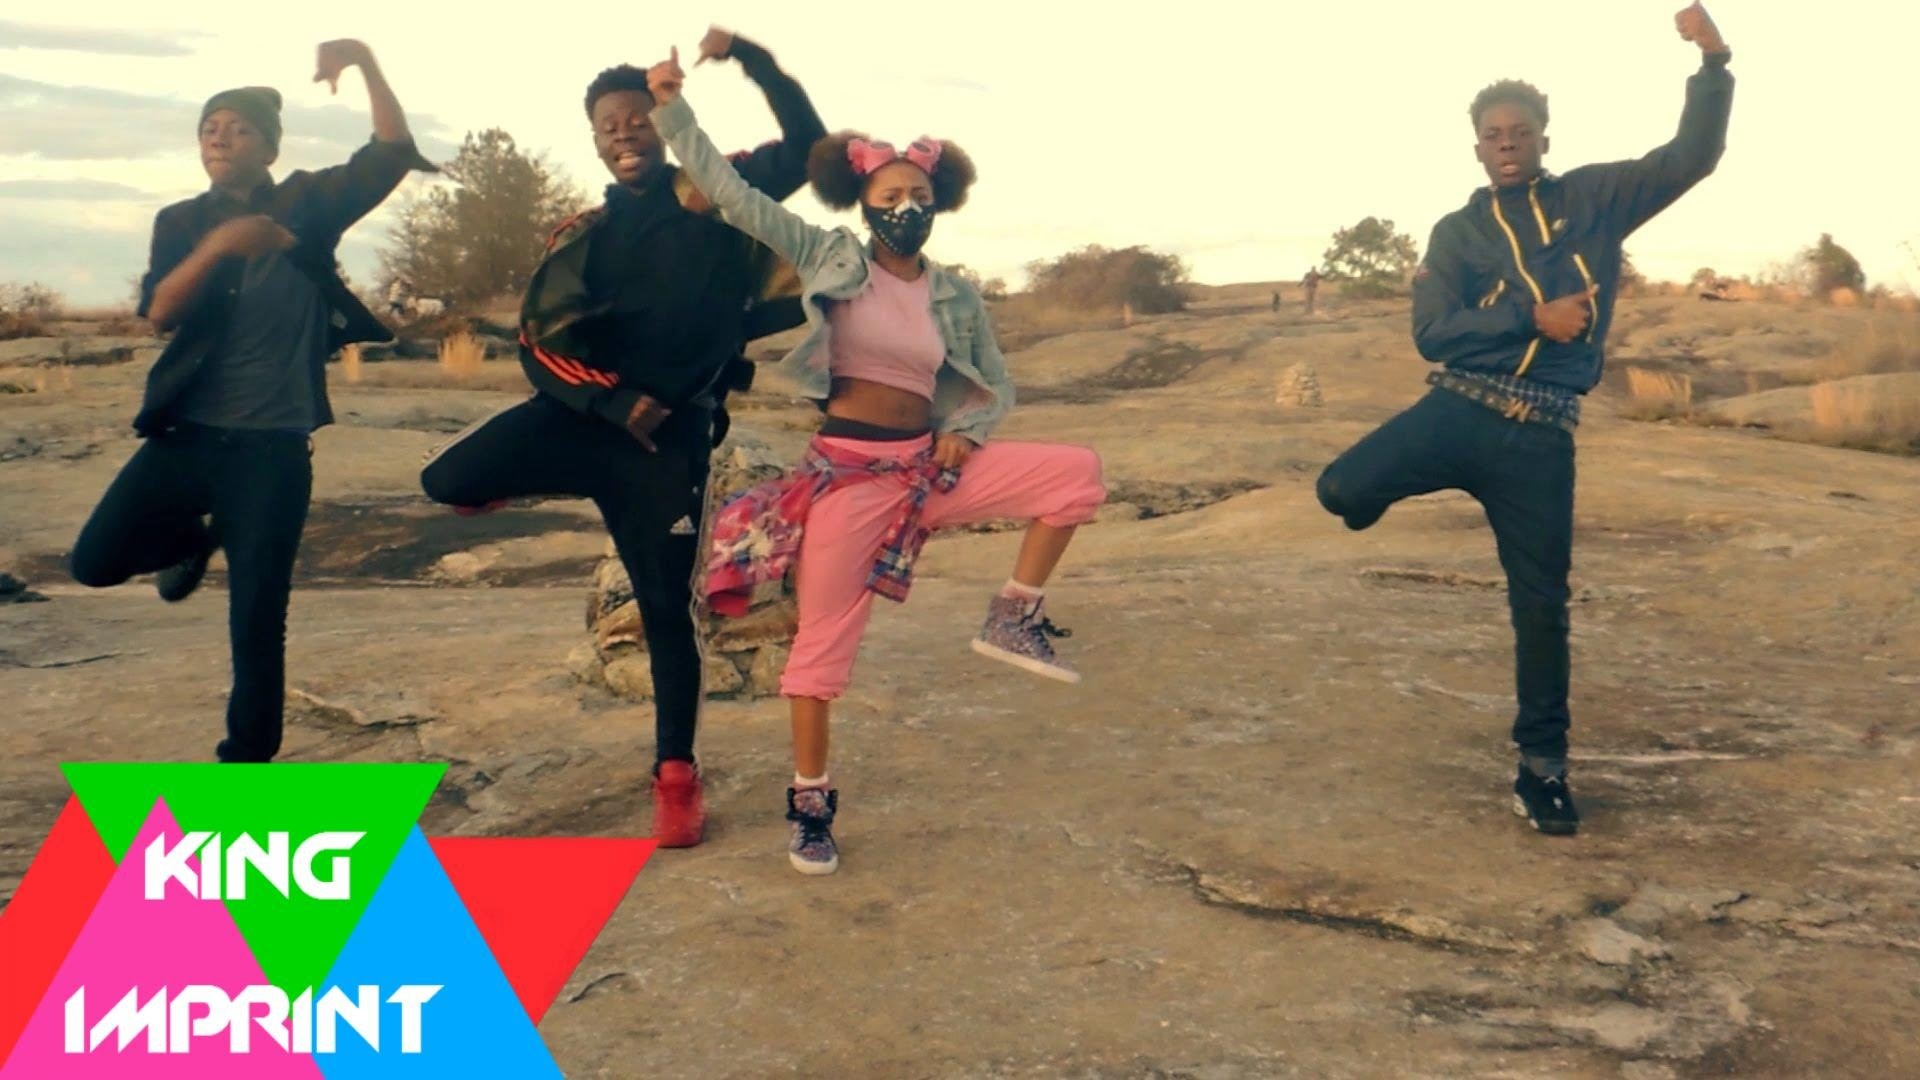 iHeartMemphis – What Are Those   Lean and Dab (Official Dance Video)   King